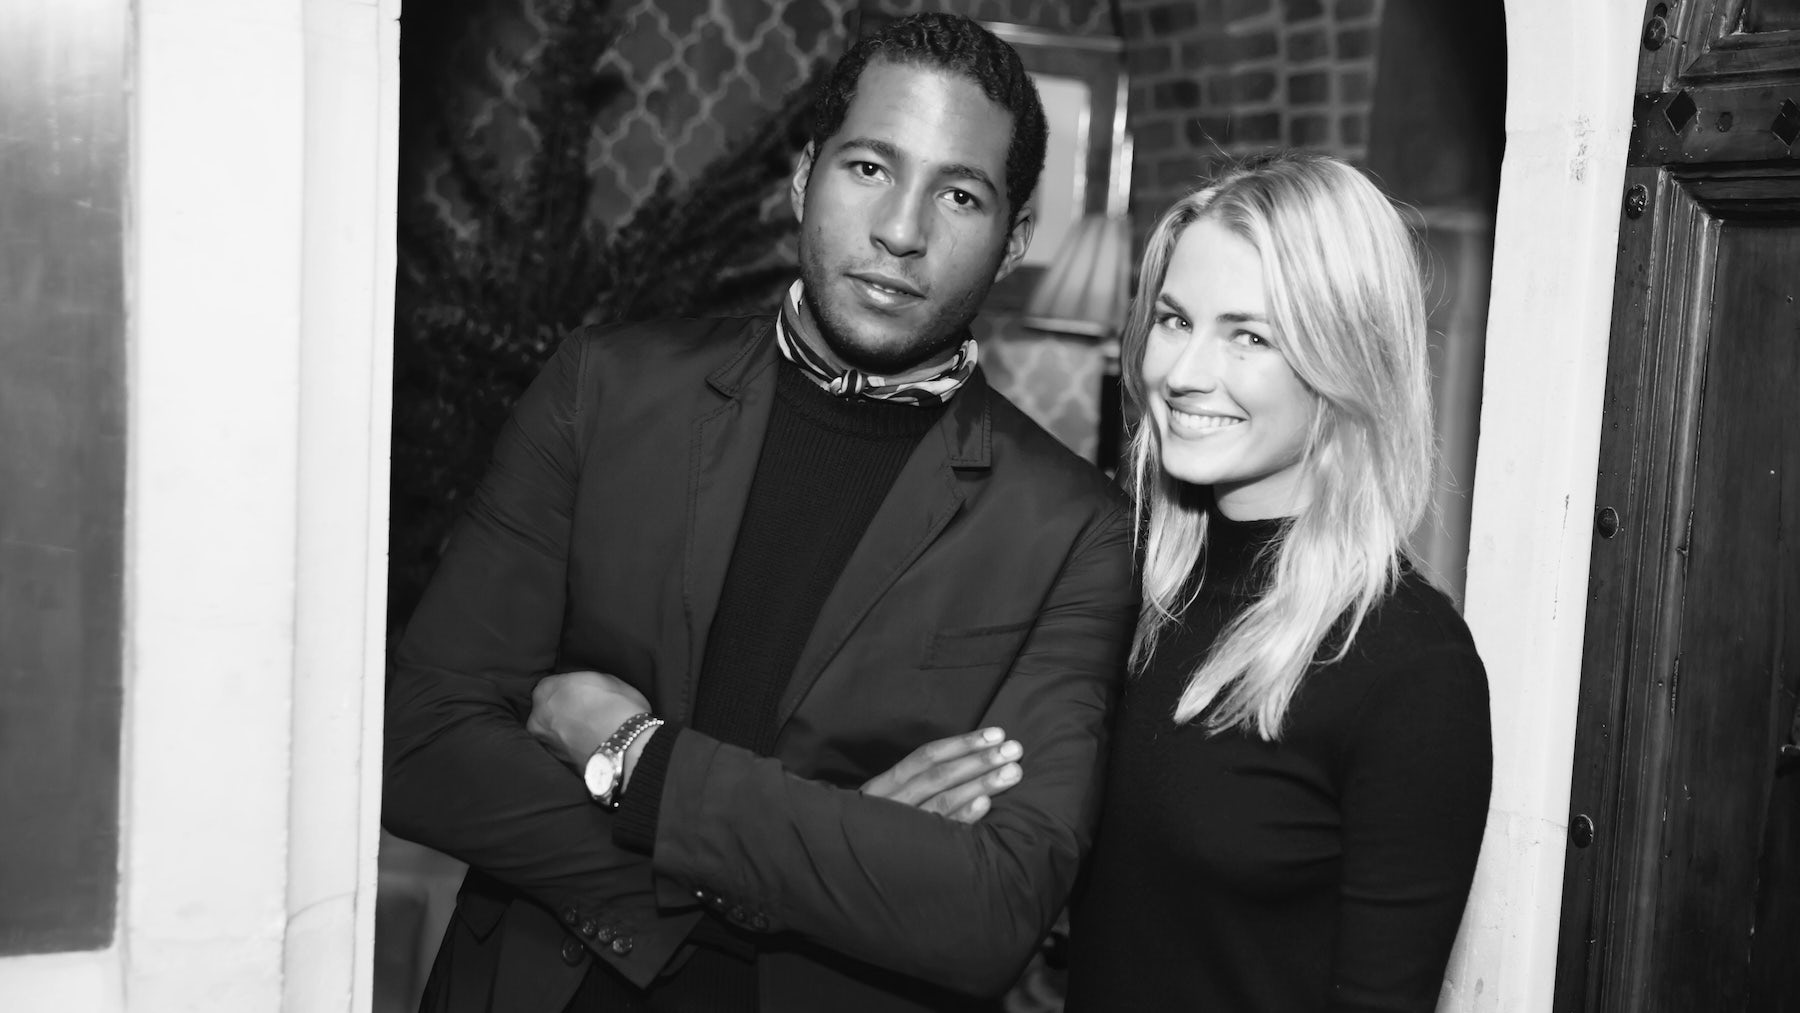 Hassan Pierre and Amanda Hearst, co-founders of Maison-de-mode.com | Source: Courtesy